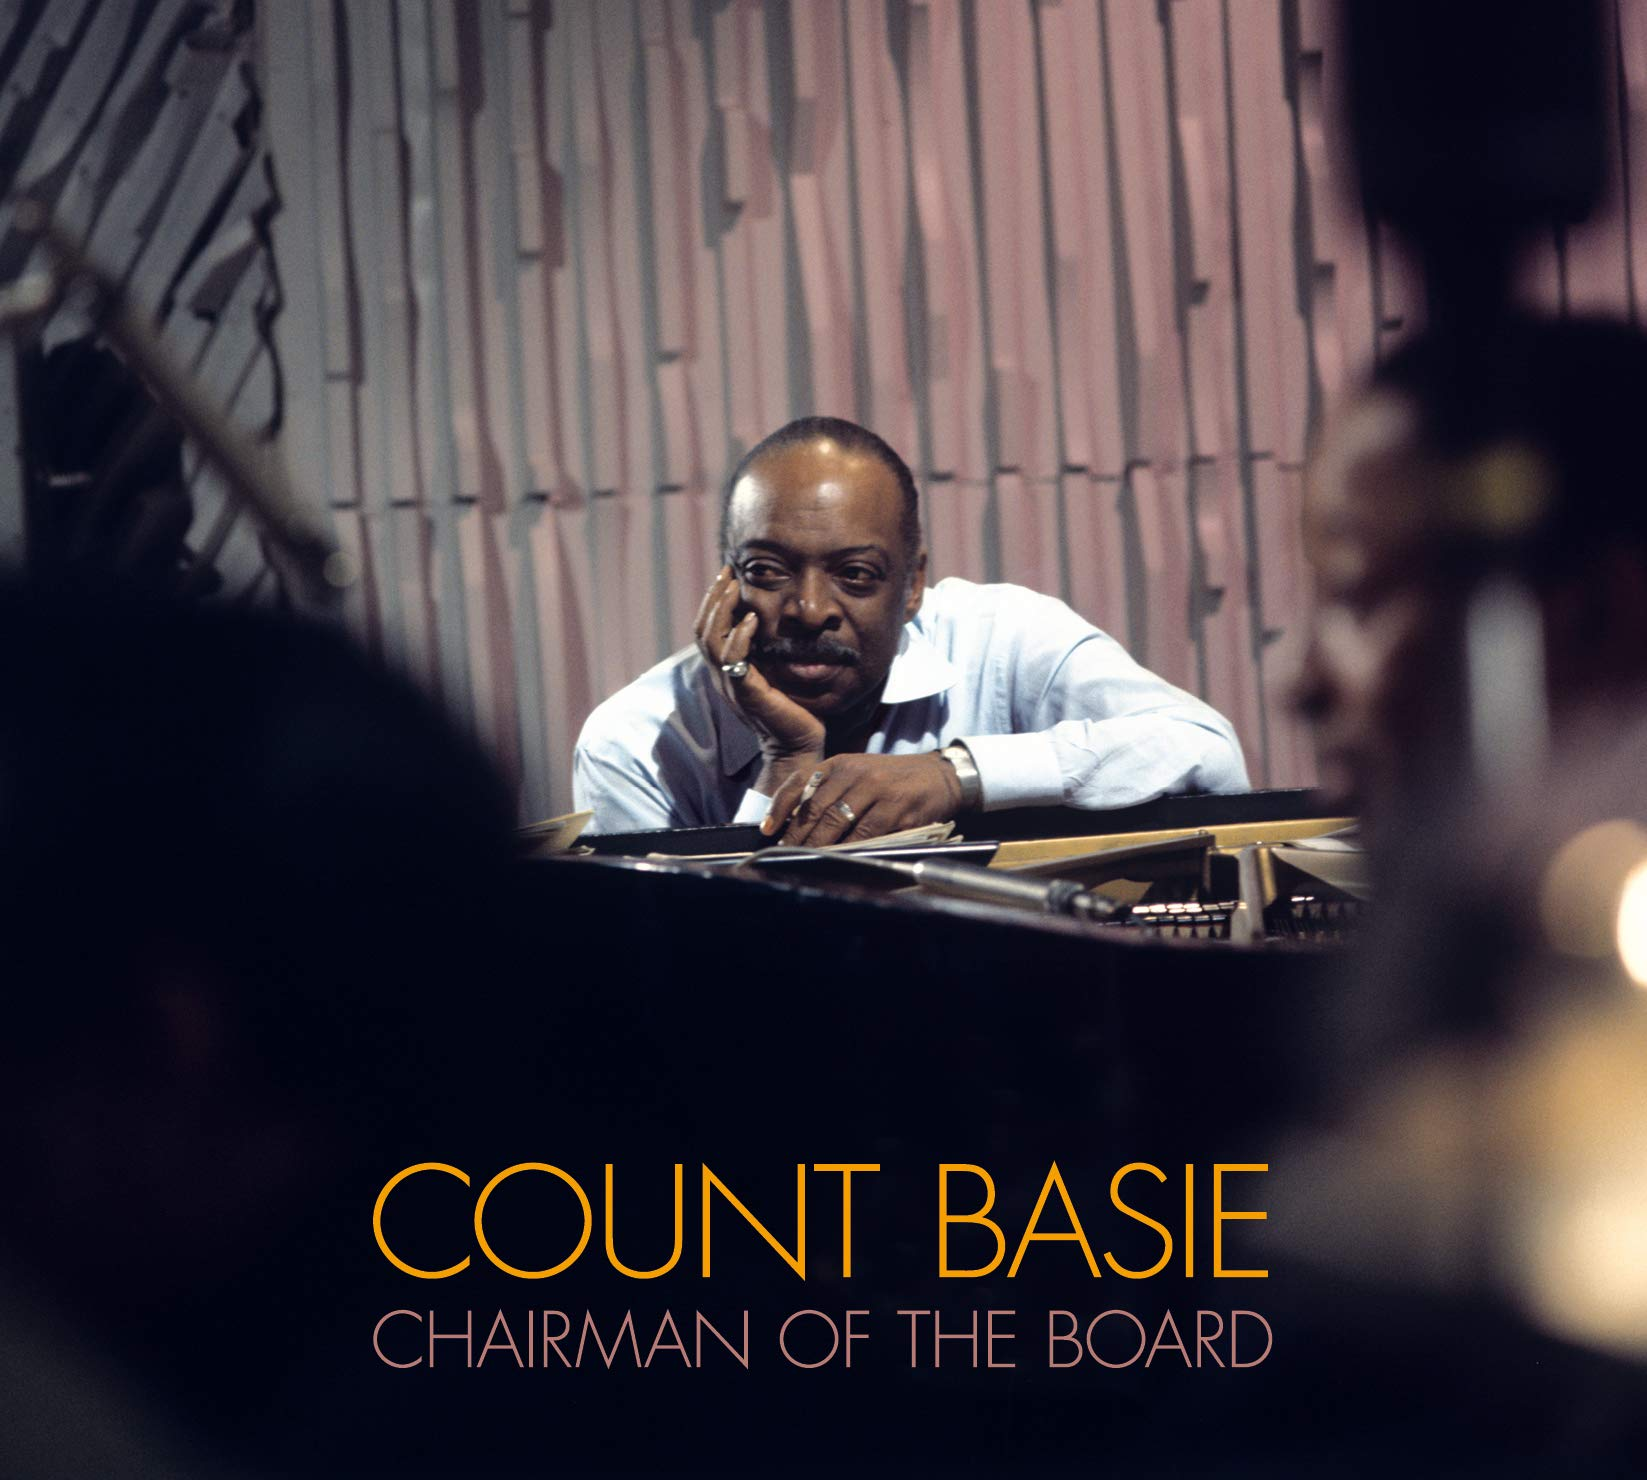 Count Basie & His Orchestra - Chairman Of The Board (1959) [FLAC] Download